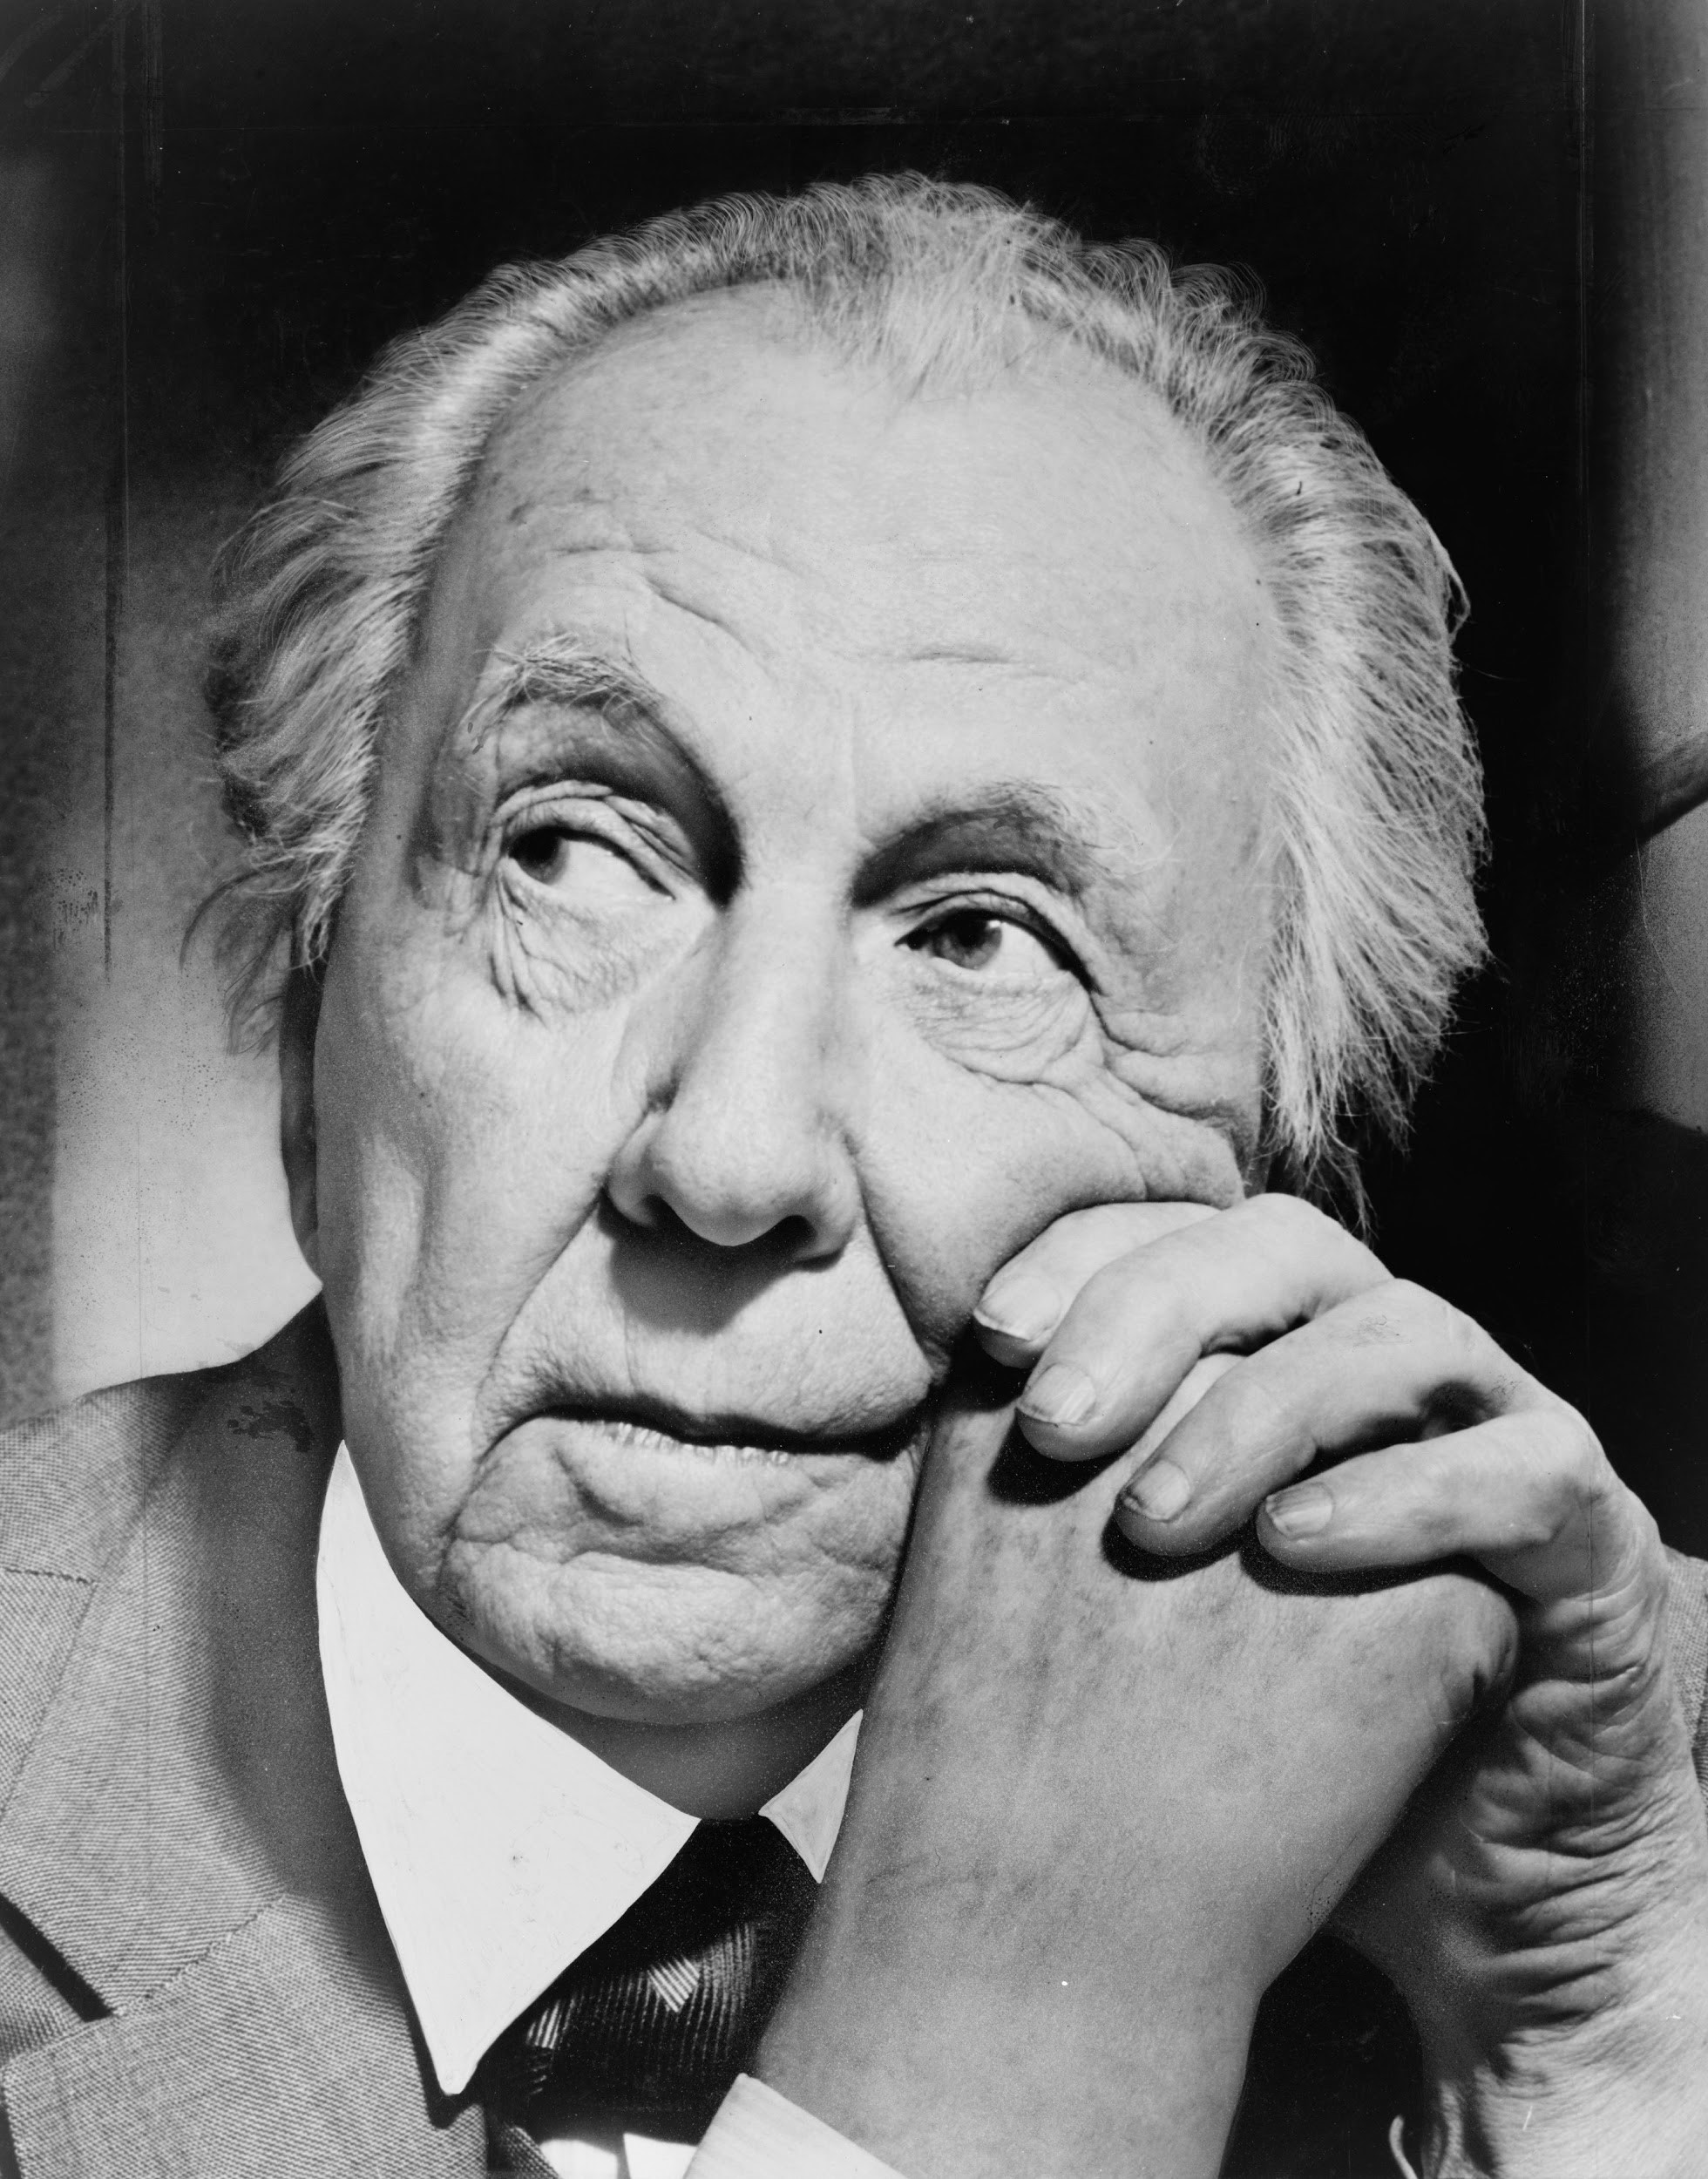 Architect Frank Lloyd Wright